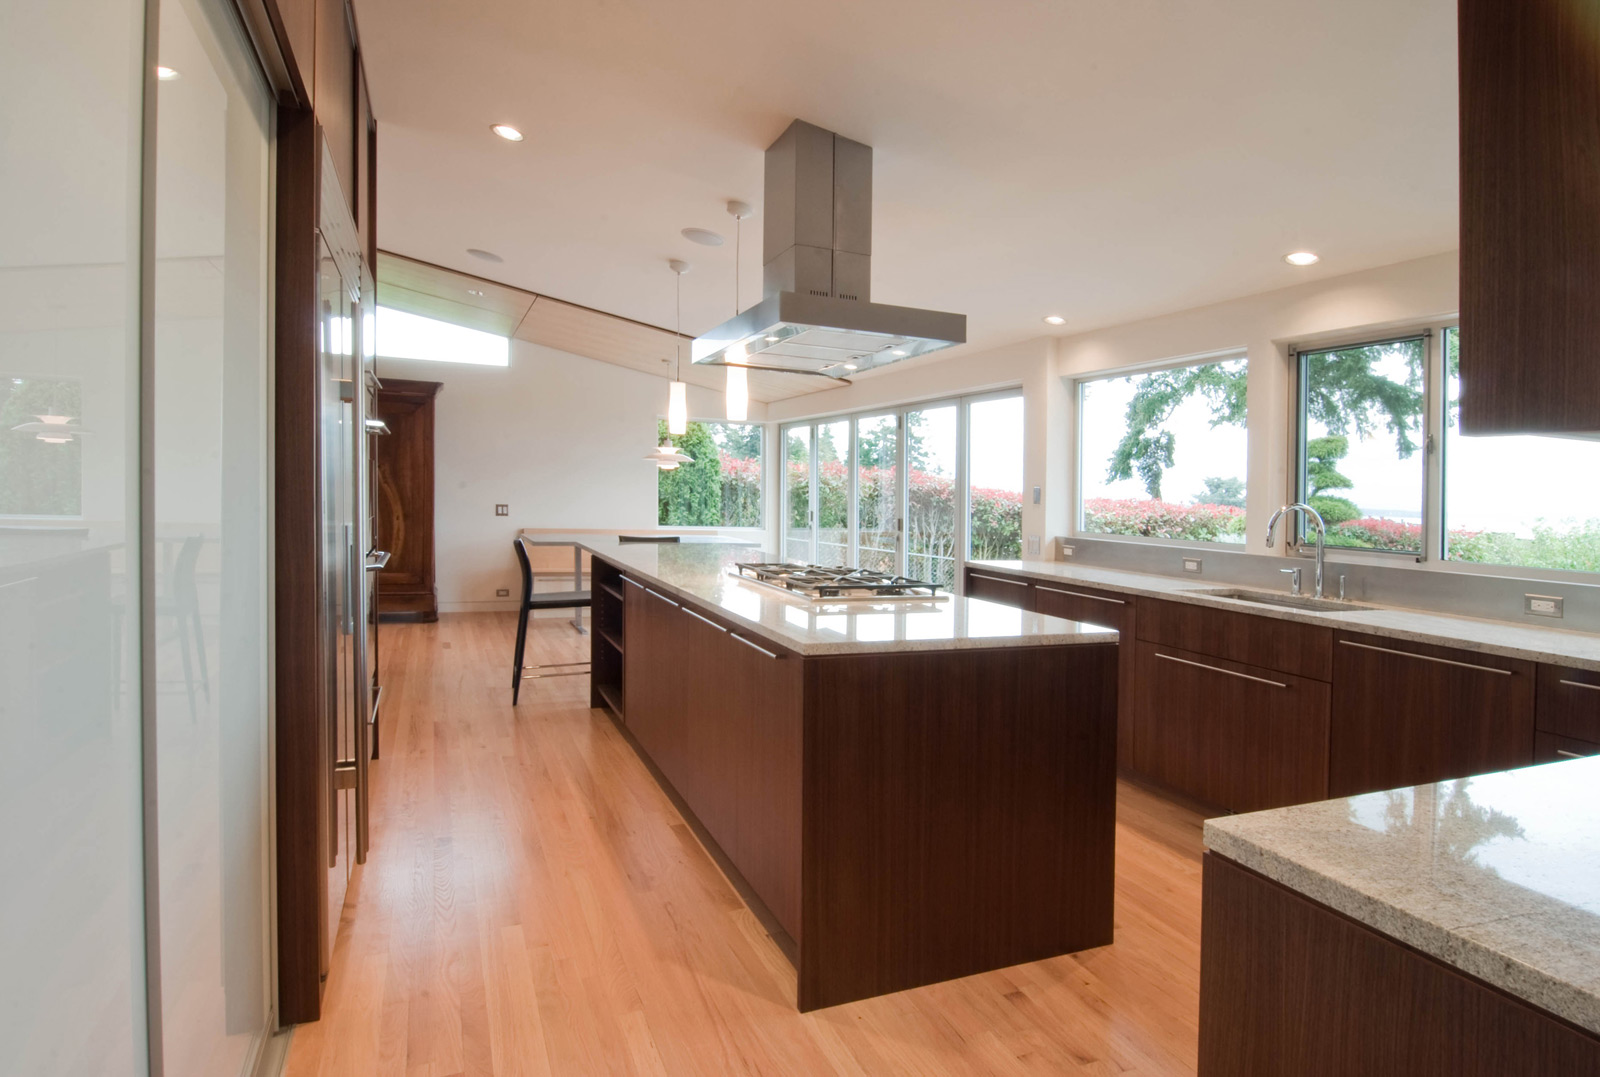 Kitchen Island With Range Design Strategies For Kitchen Hood Venting Build Blog